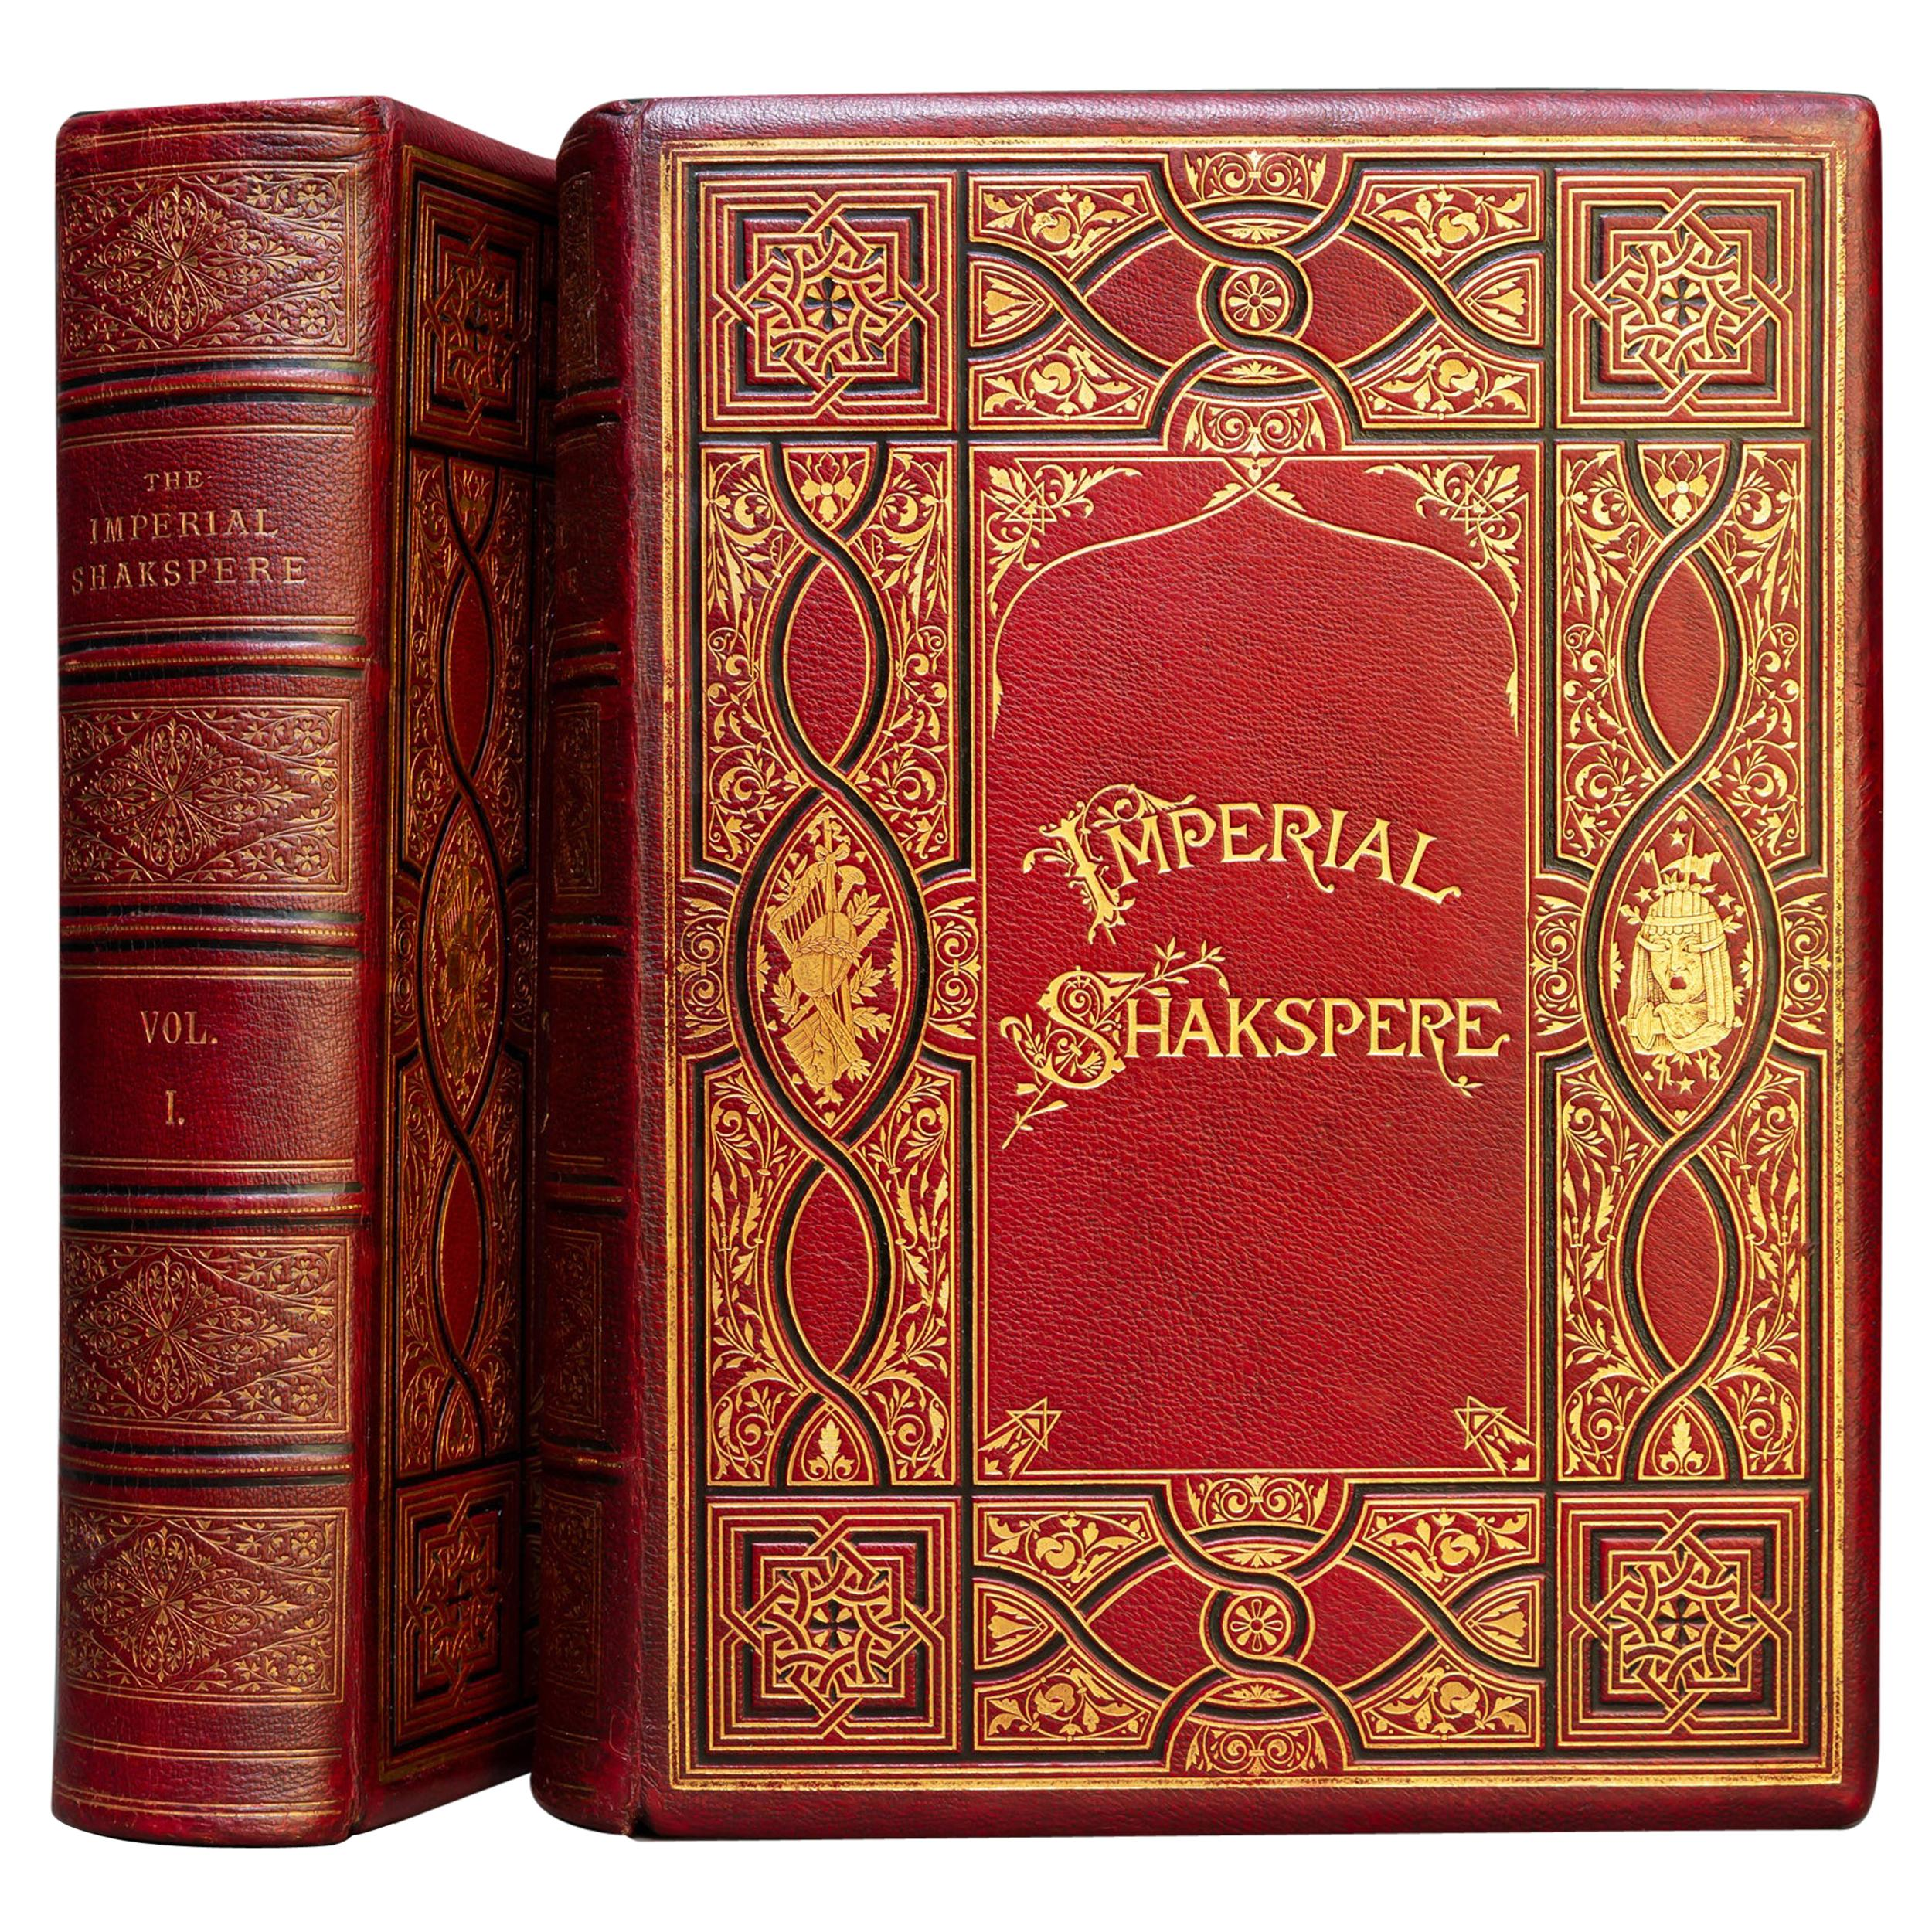 'Book Sets' 2 Volumes, William Shakespeare, The Complete Works